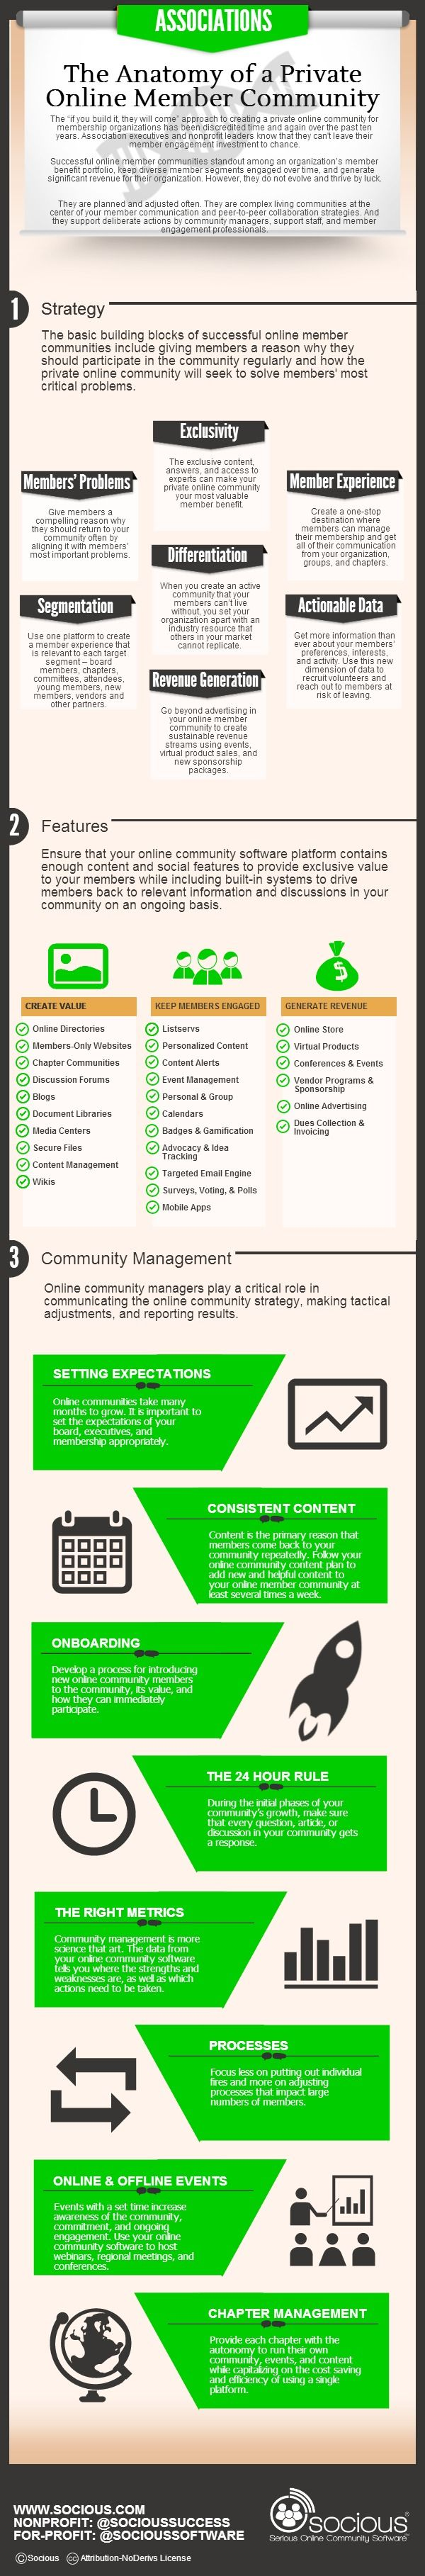 What Is The Anatomy Of A Private Online Member Community? #infographic